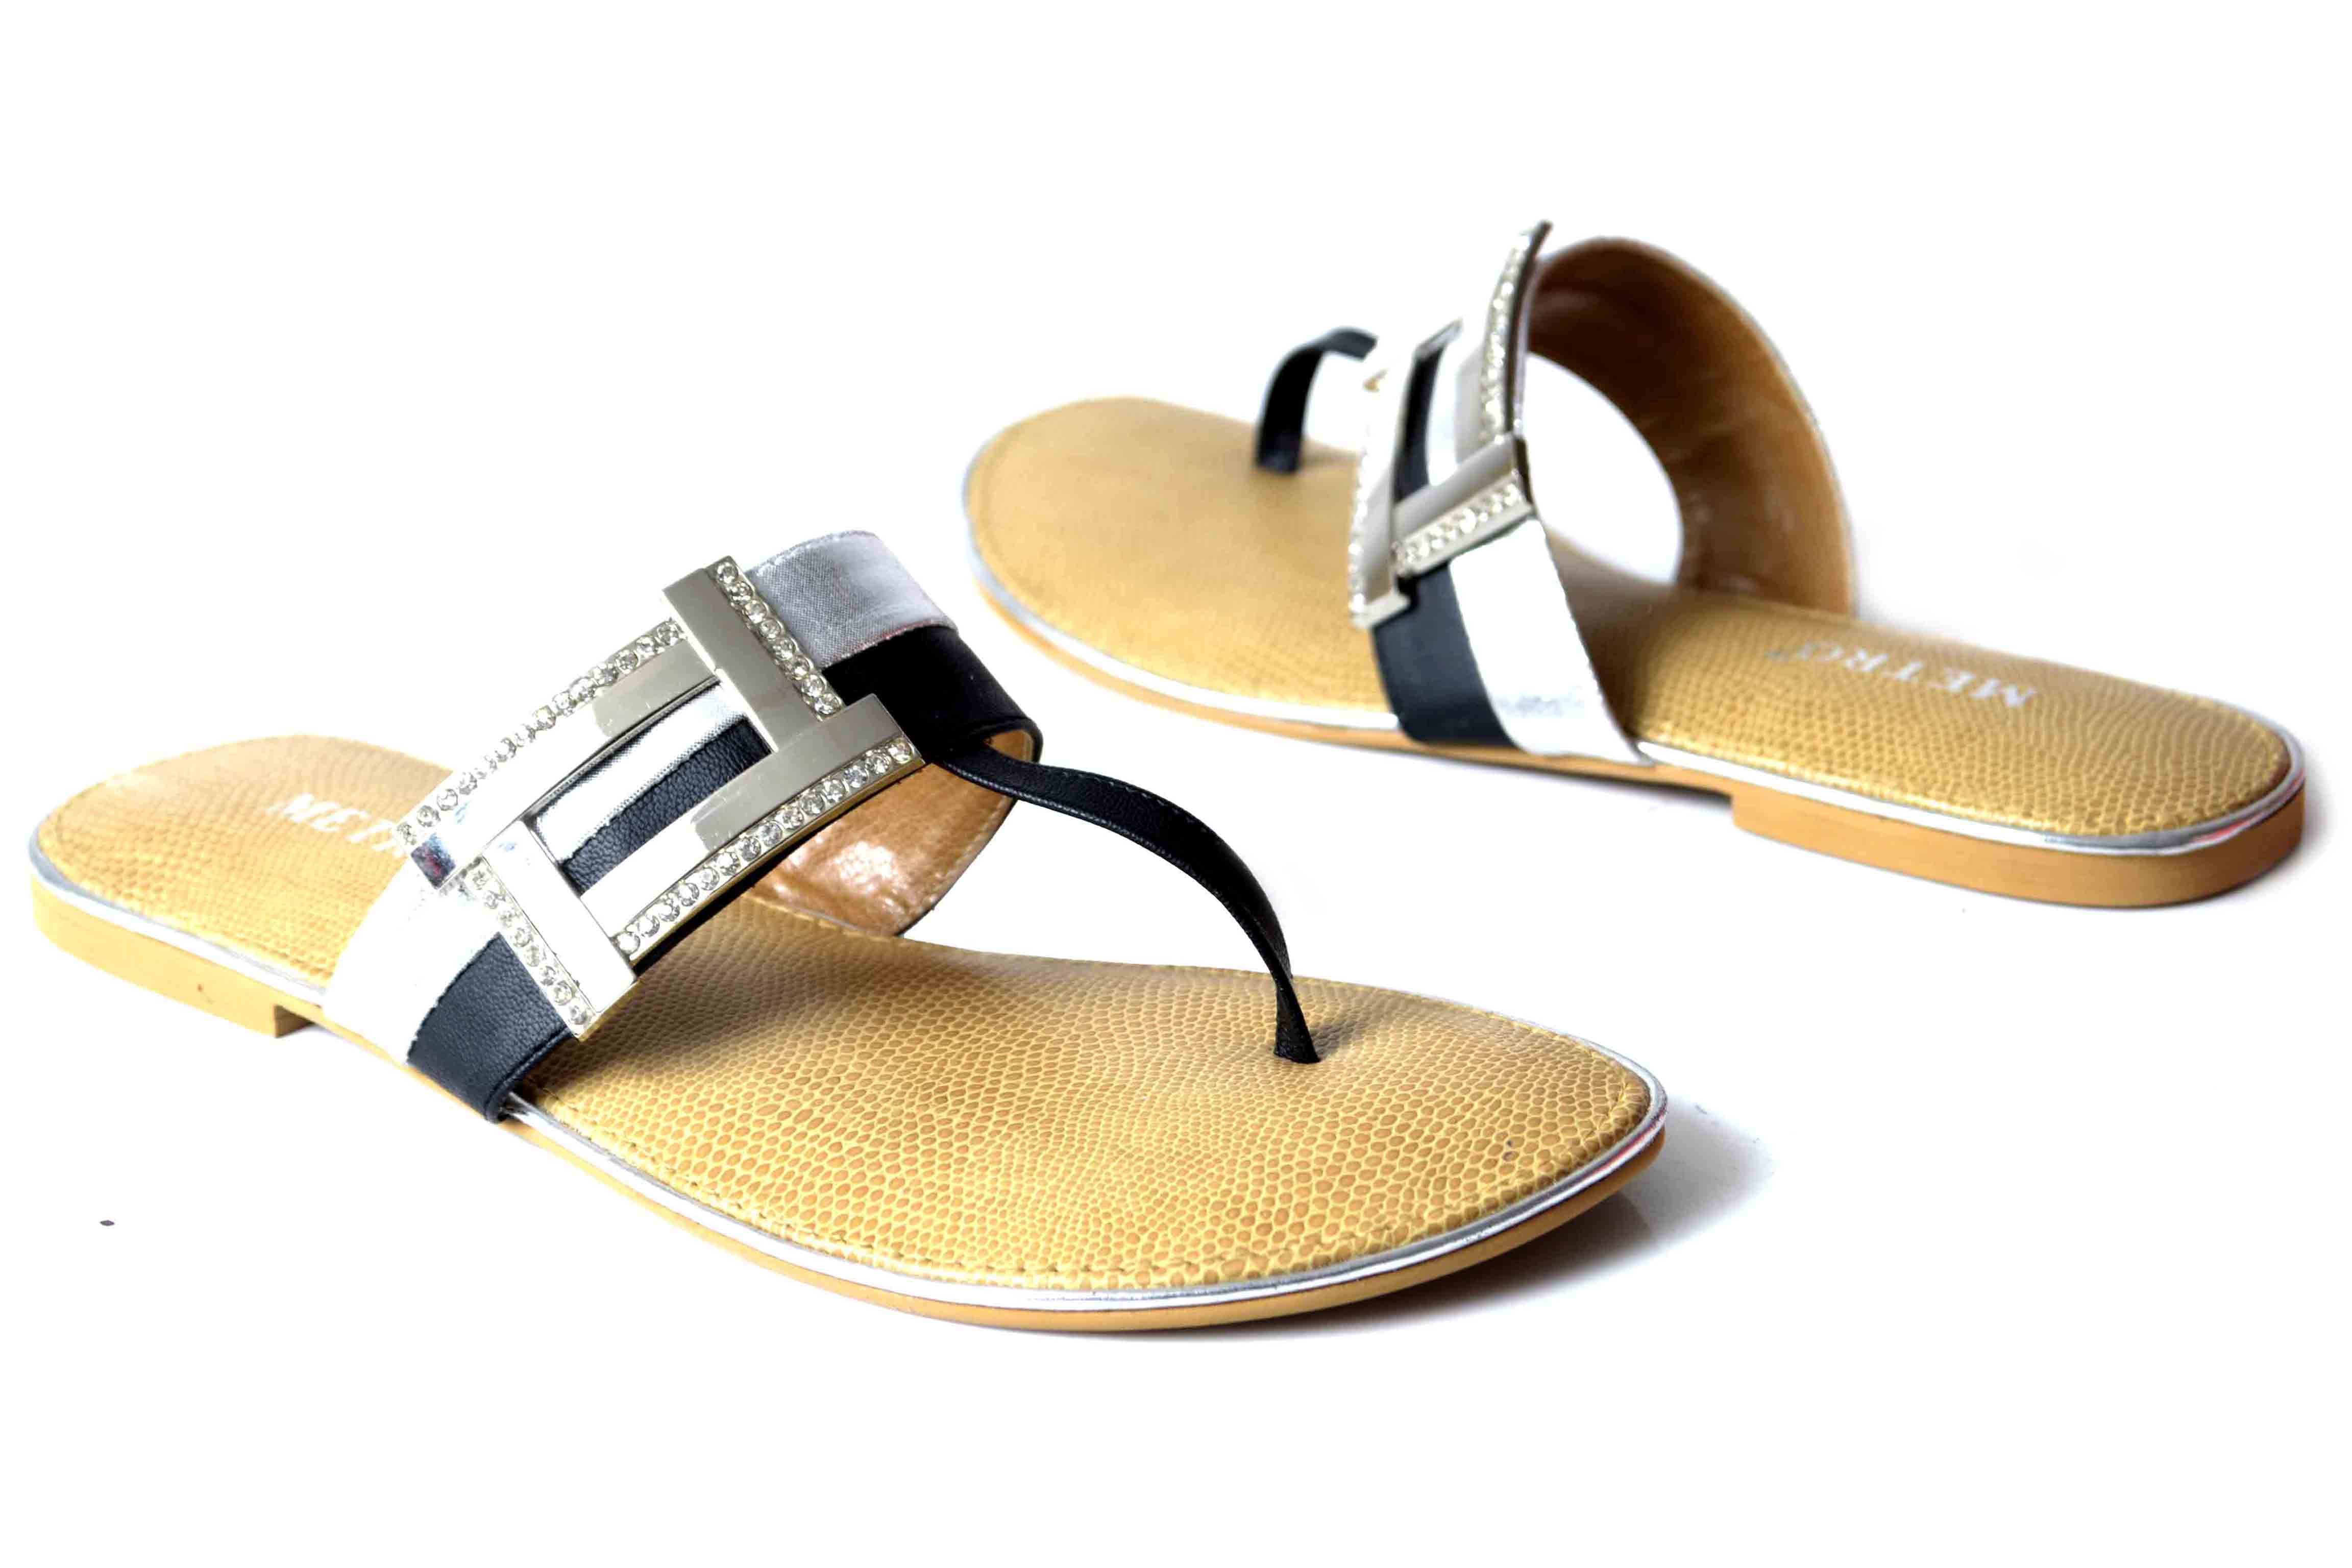 Metro-Shoes-Spring-Summer-Collection-2015-2016 (27)